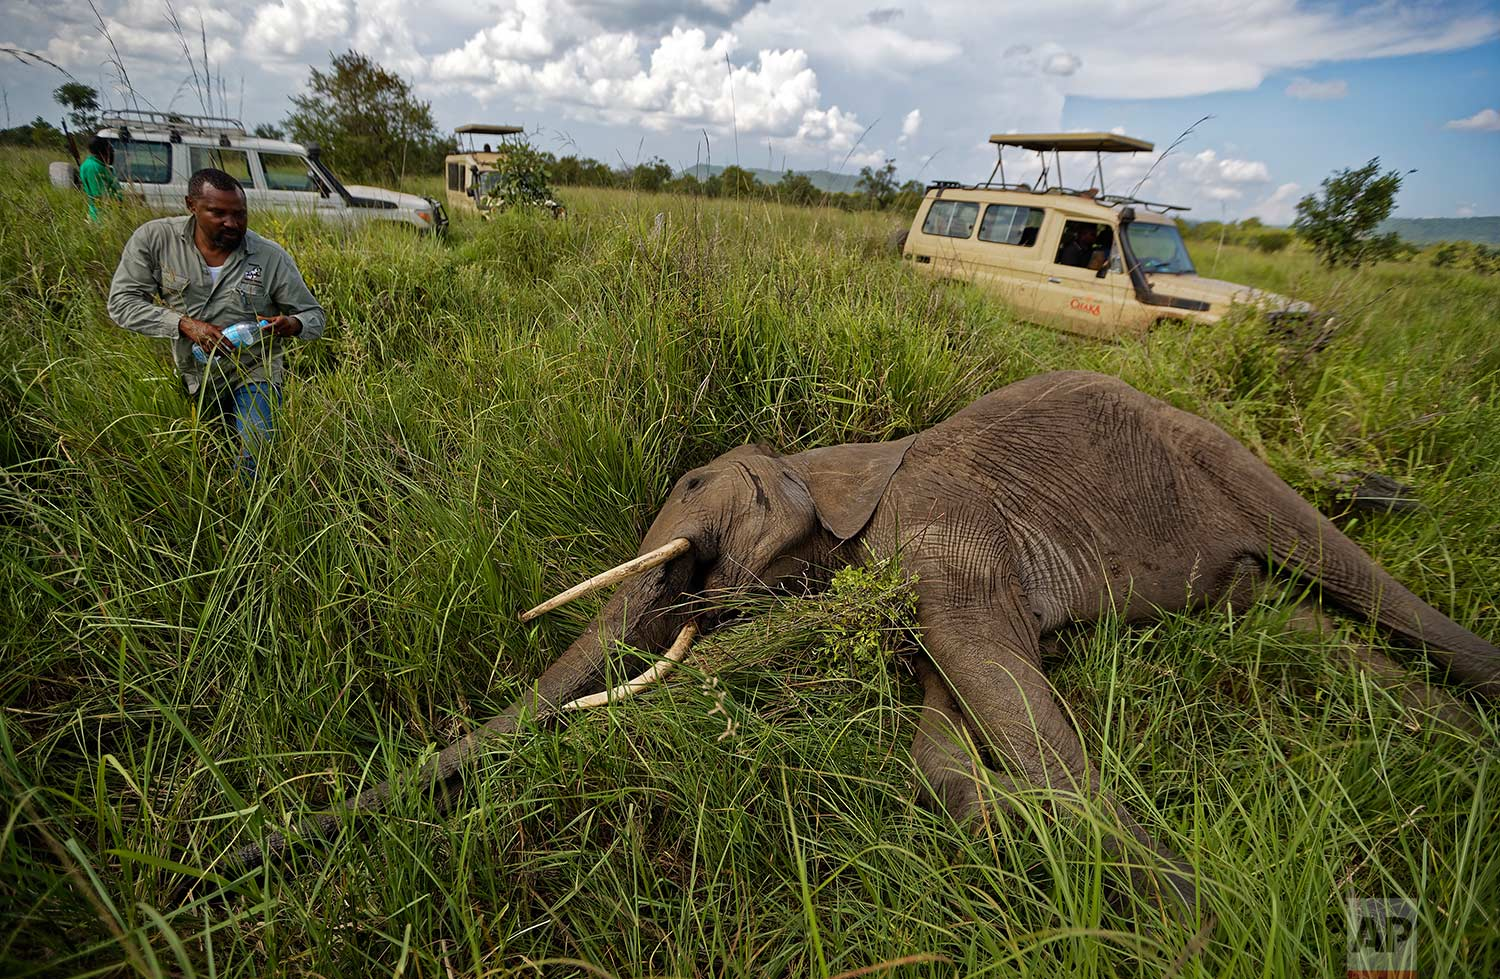 In this photo taken Friday, March 23, 2018, wildlife veterinarian Ernest Mjingo walks toward a tranquilized elephant carrying a bottle of water to pour over its ears to keep it cool, during an operation to attach GPS tracking collars in Mikumi National Park, Tanzania. (AP Photo/Ben Curtis)